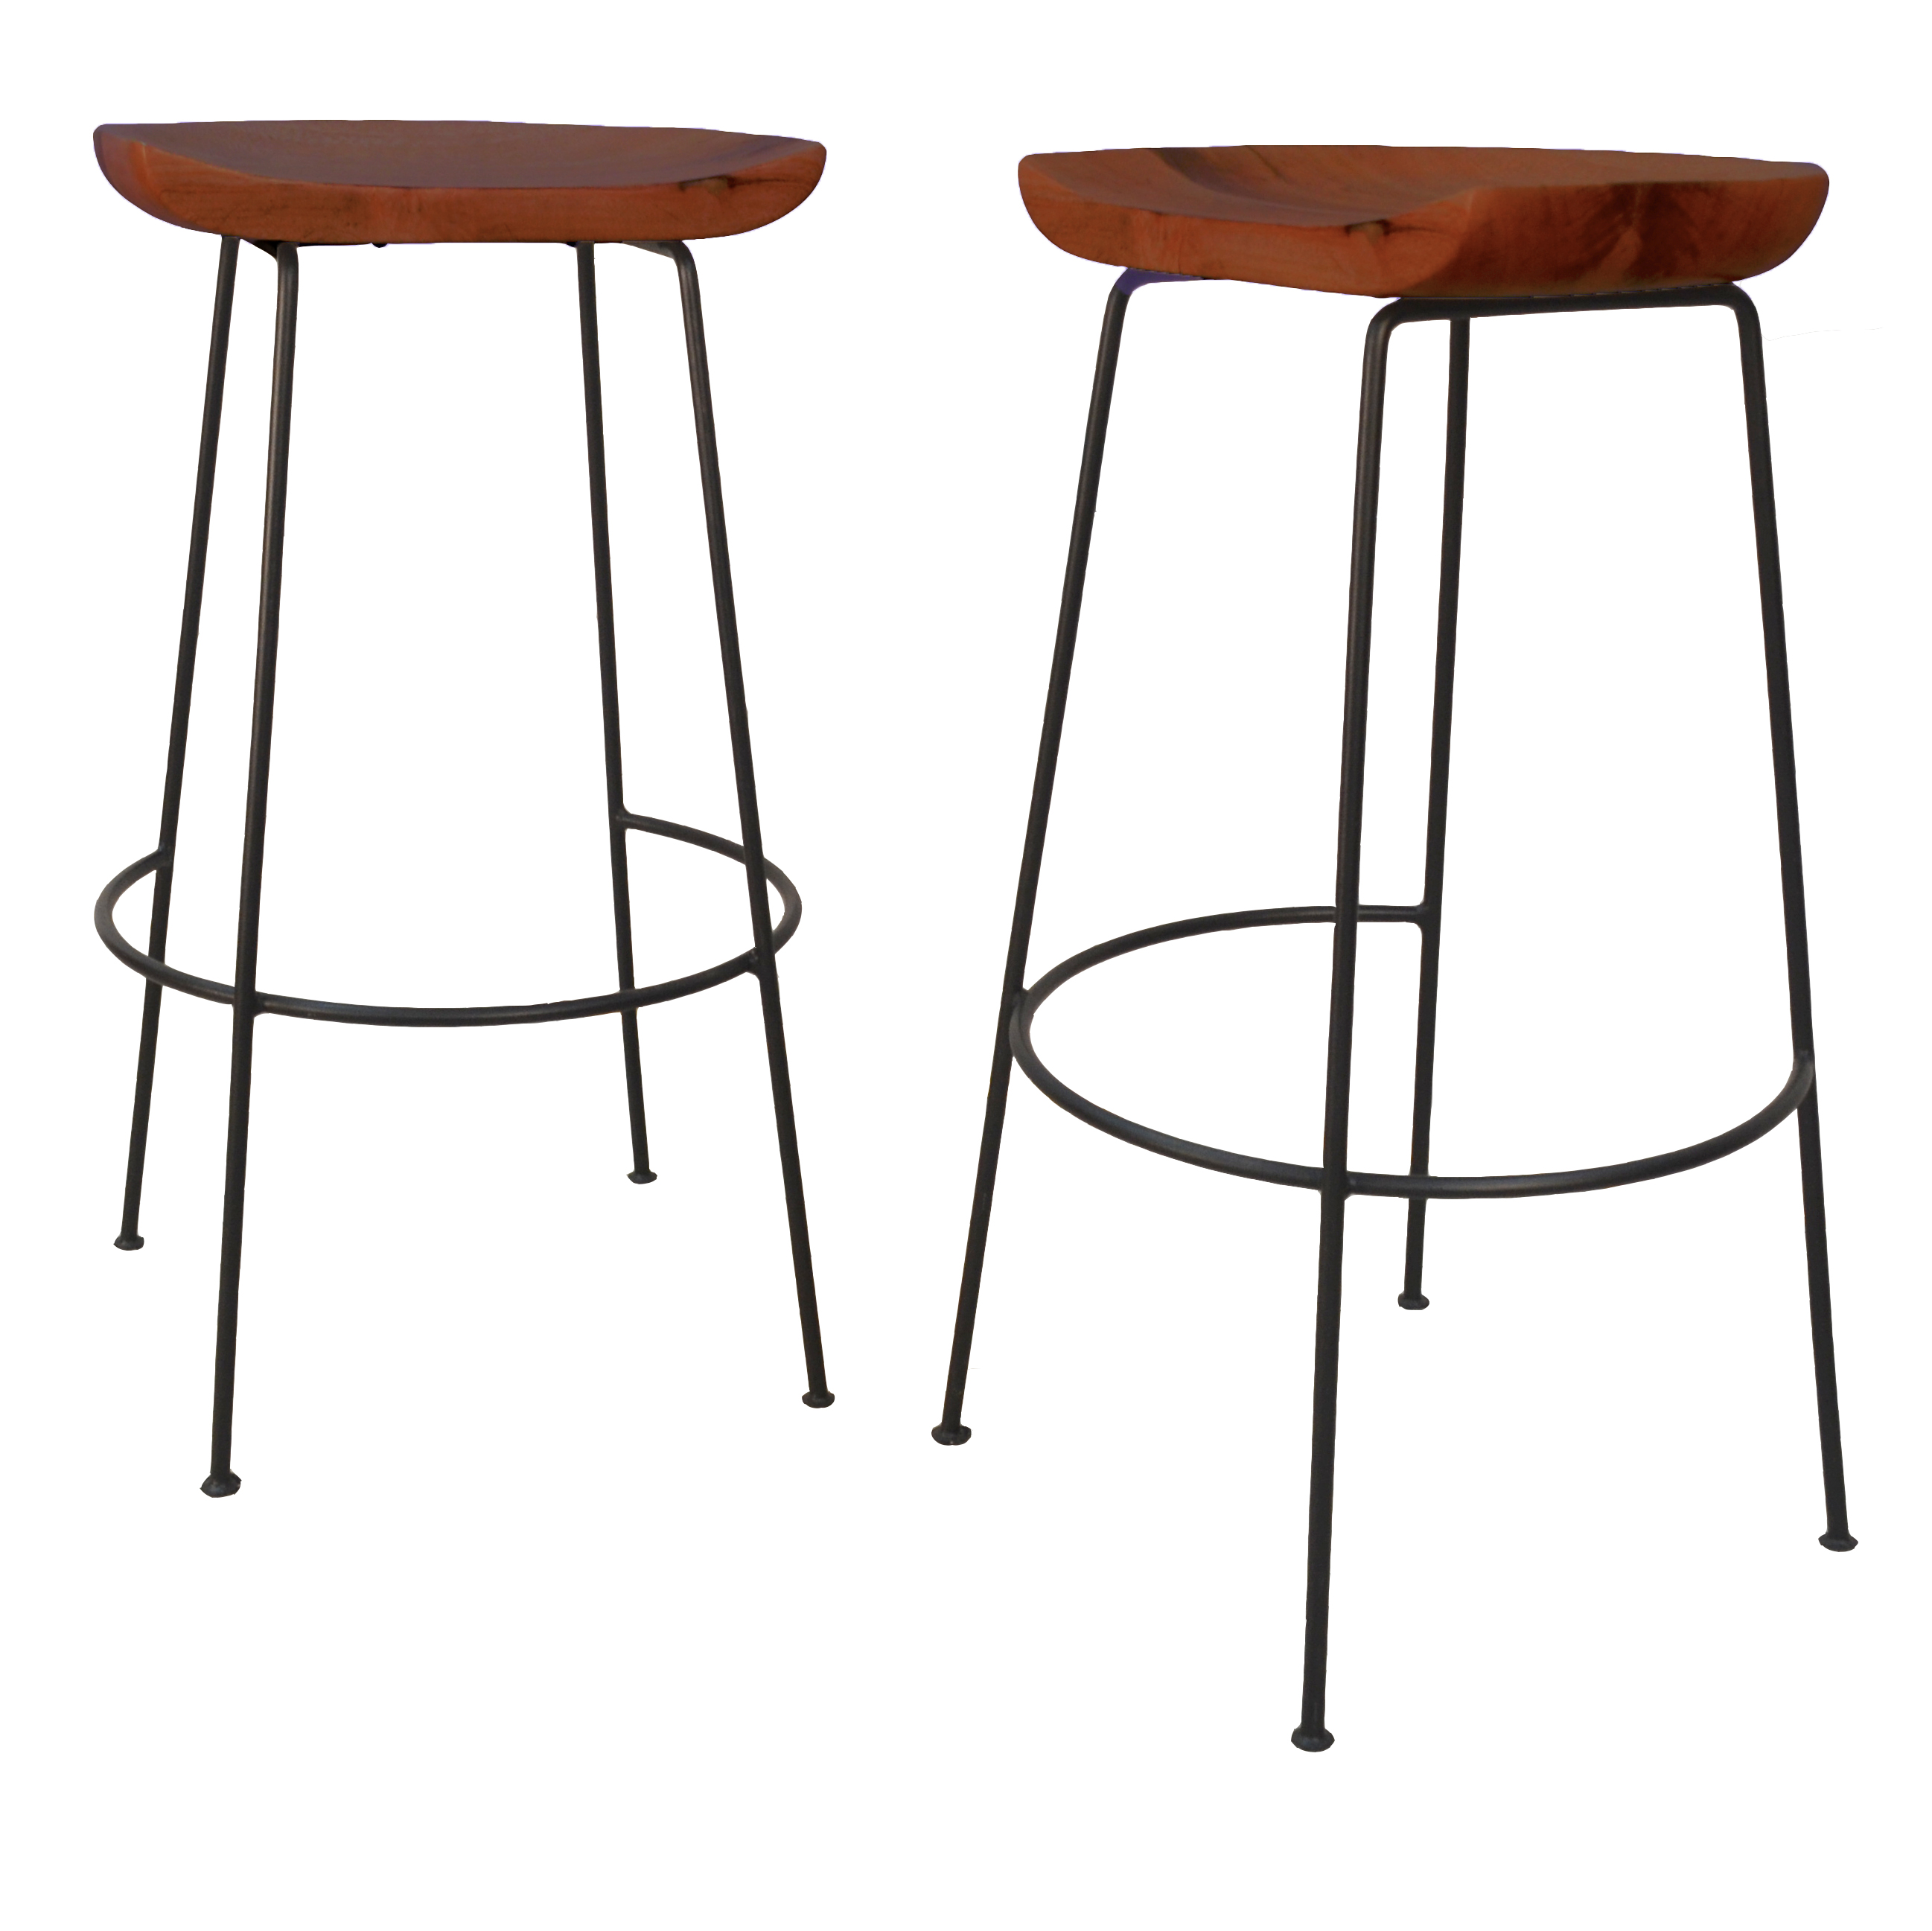 "Diya 30"" Bar Stool Set of 2, Chestnut/Black"